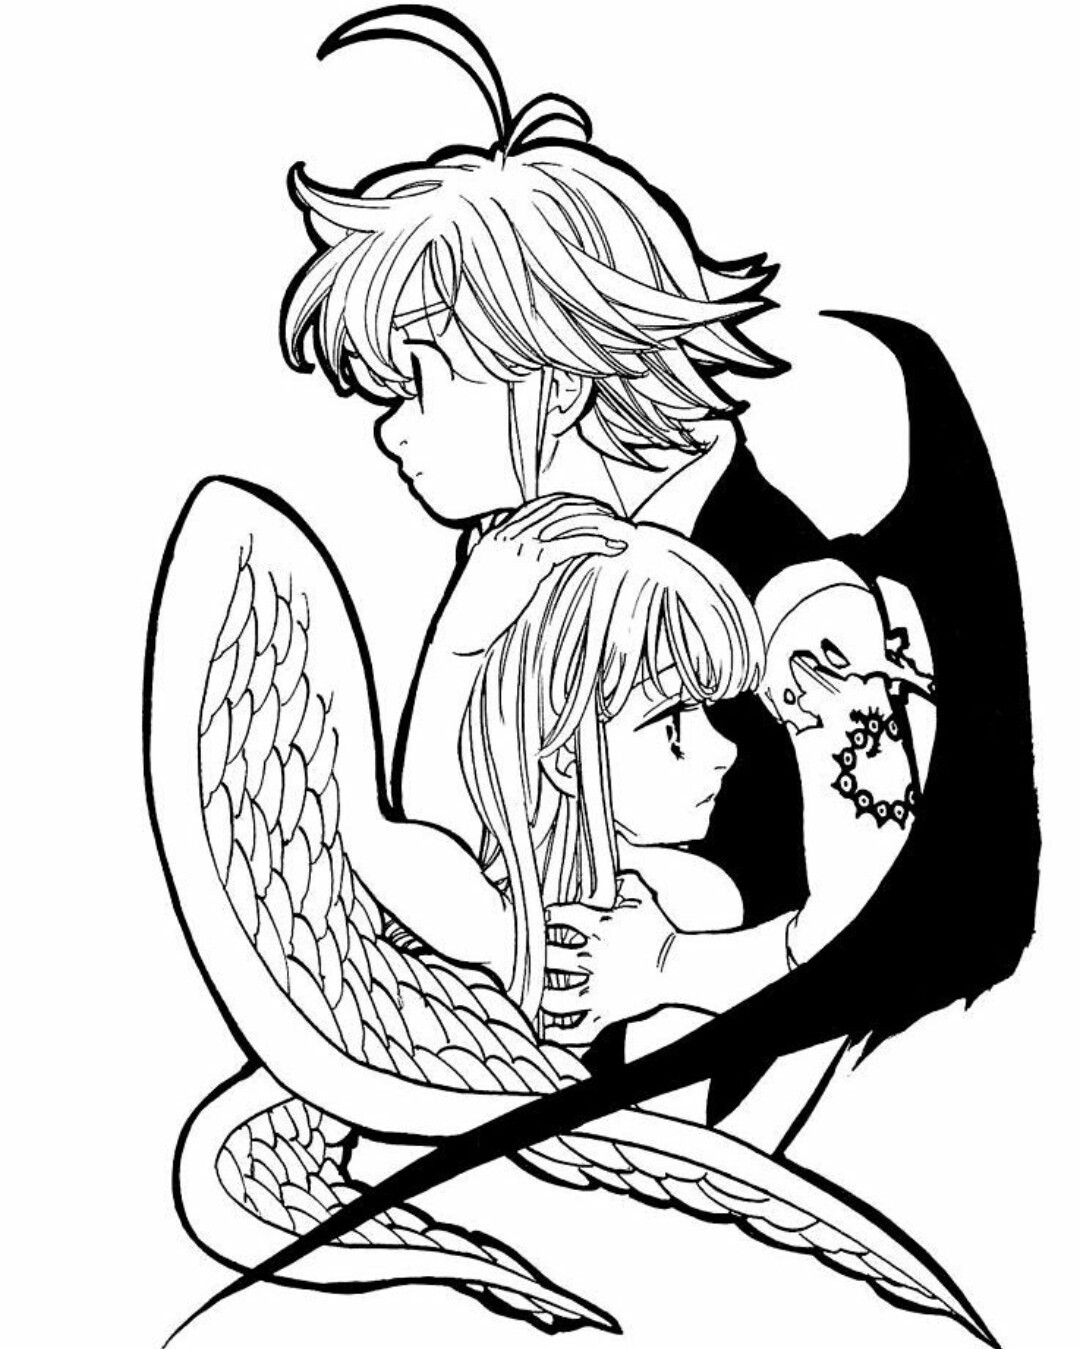 Seven Deadly Sins Coloring Pages - Coloring Home